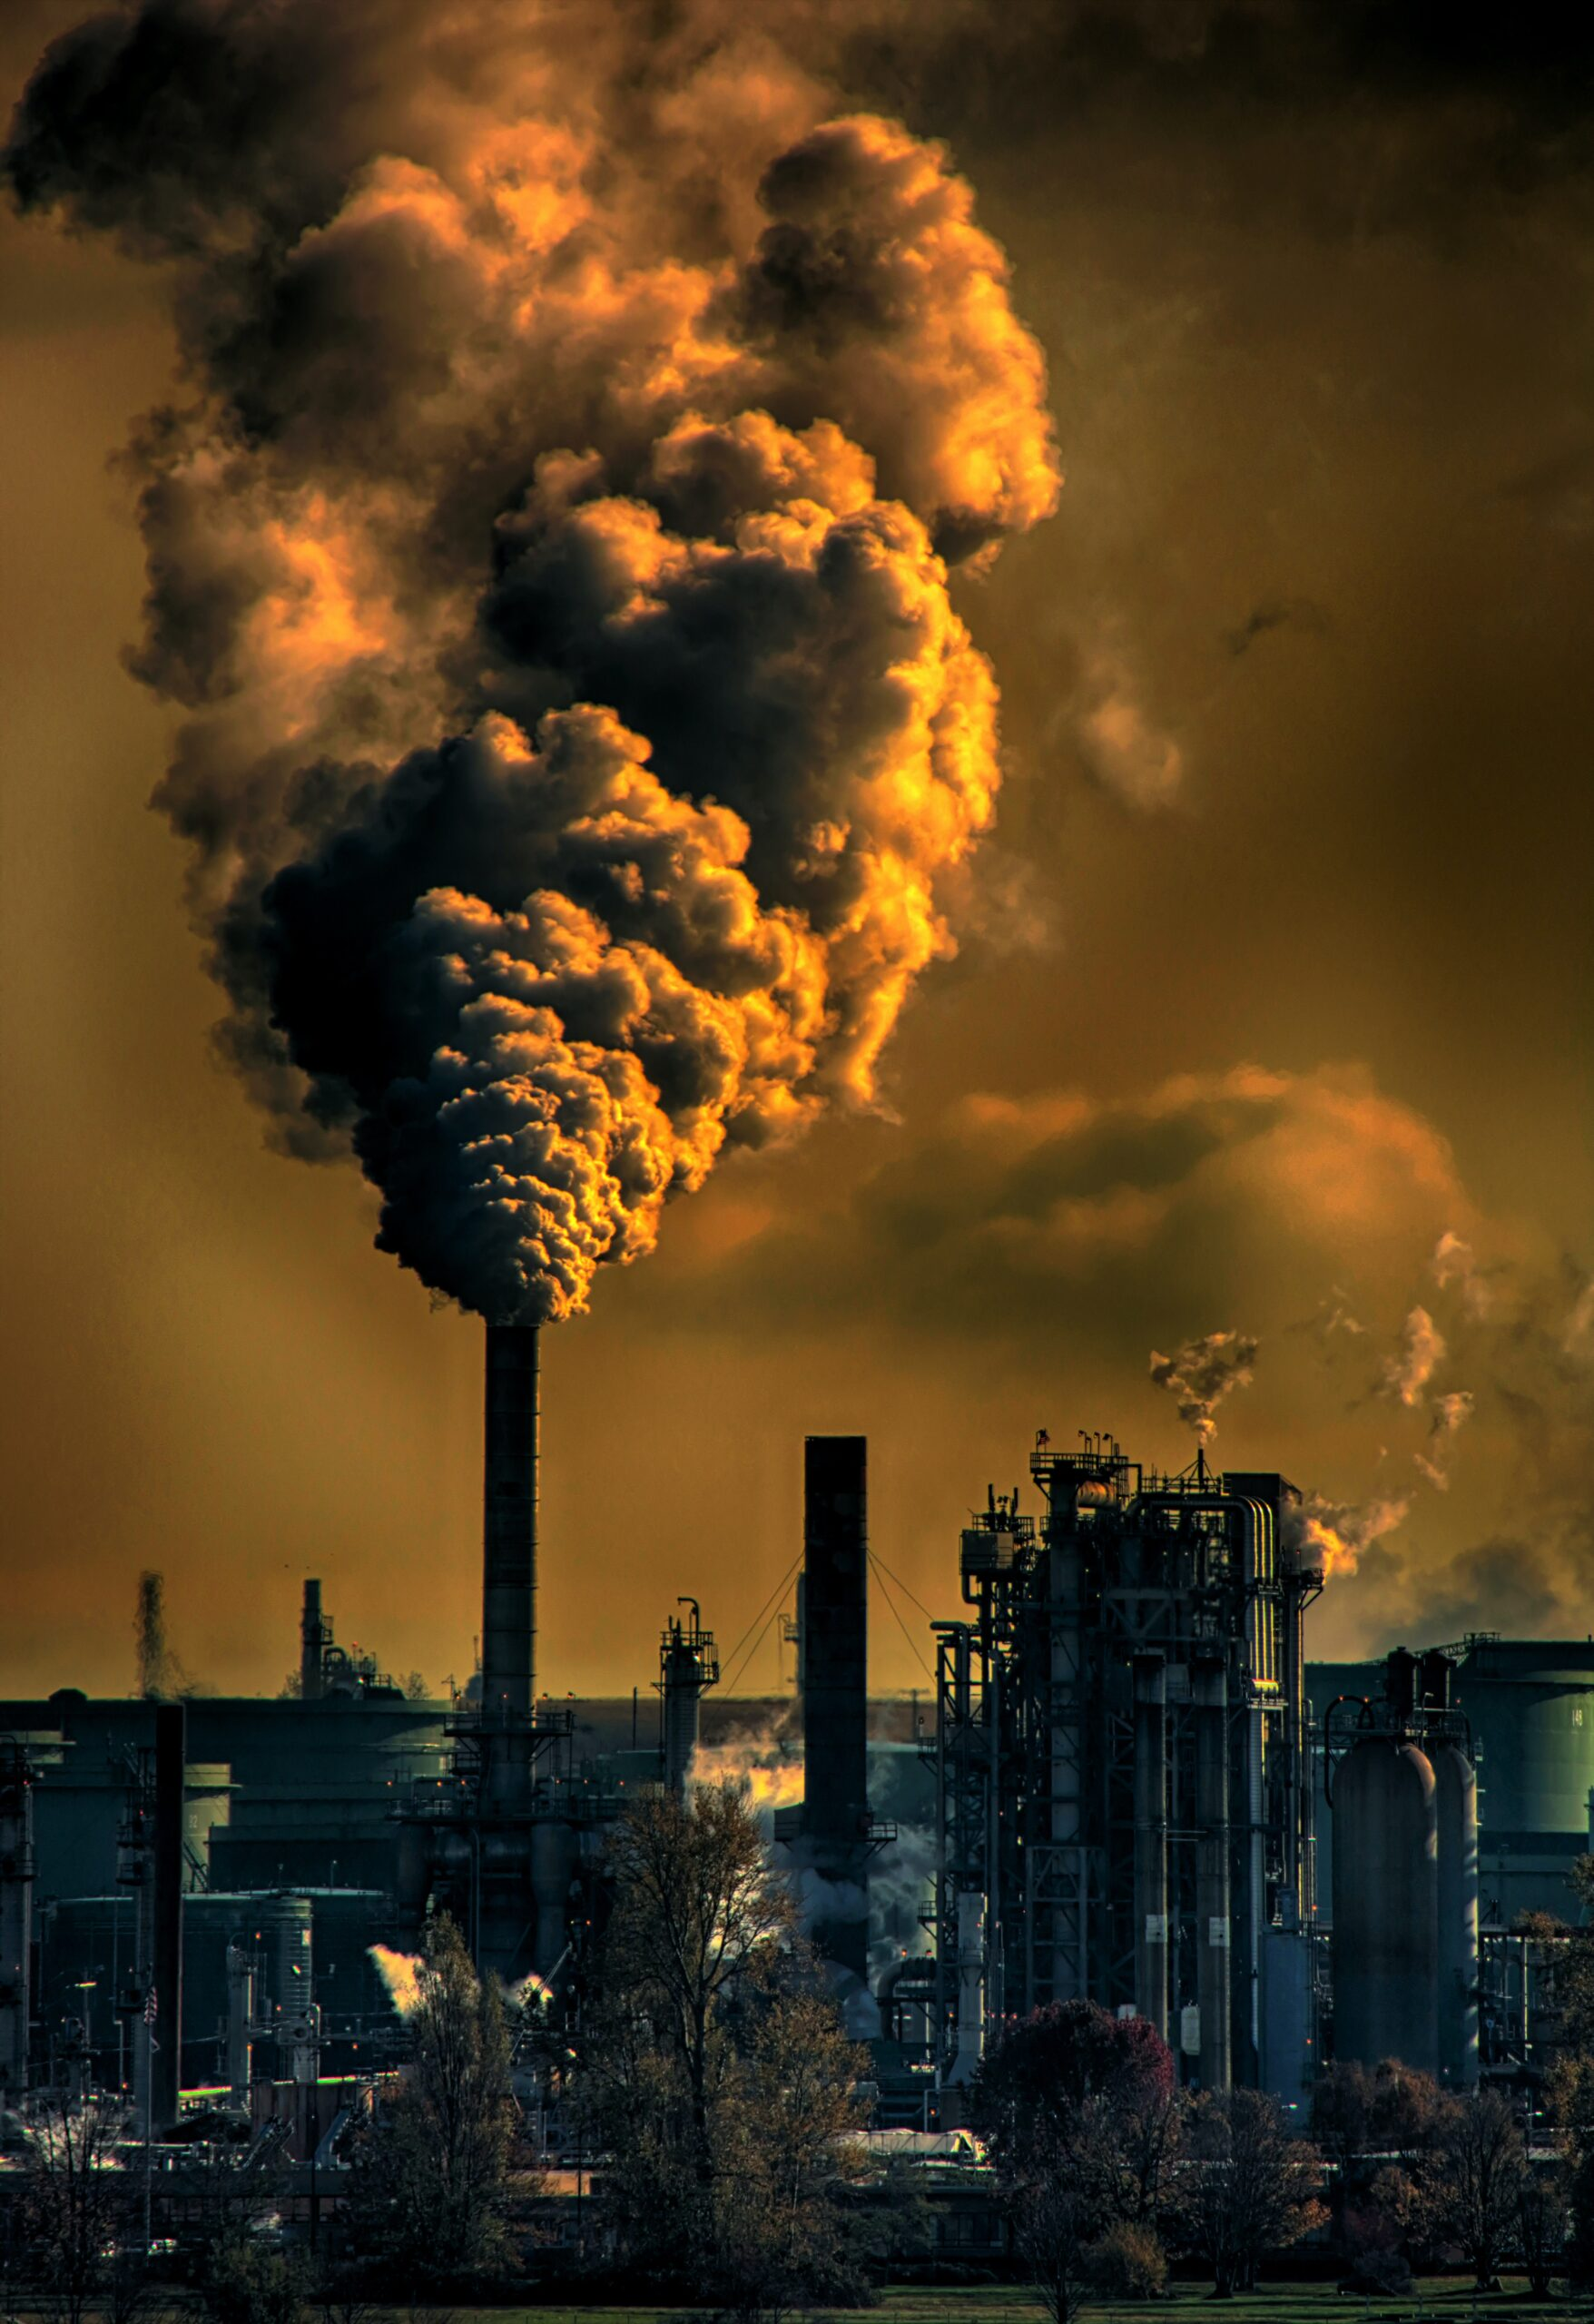 Germany: Air pollution reduces electoral support for government parties